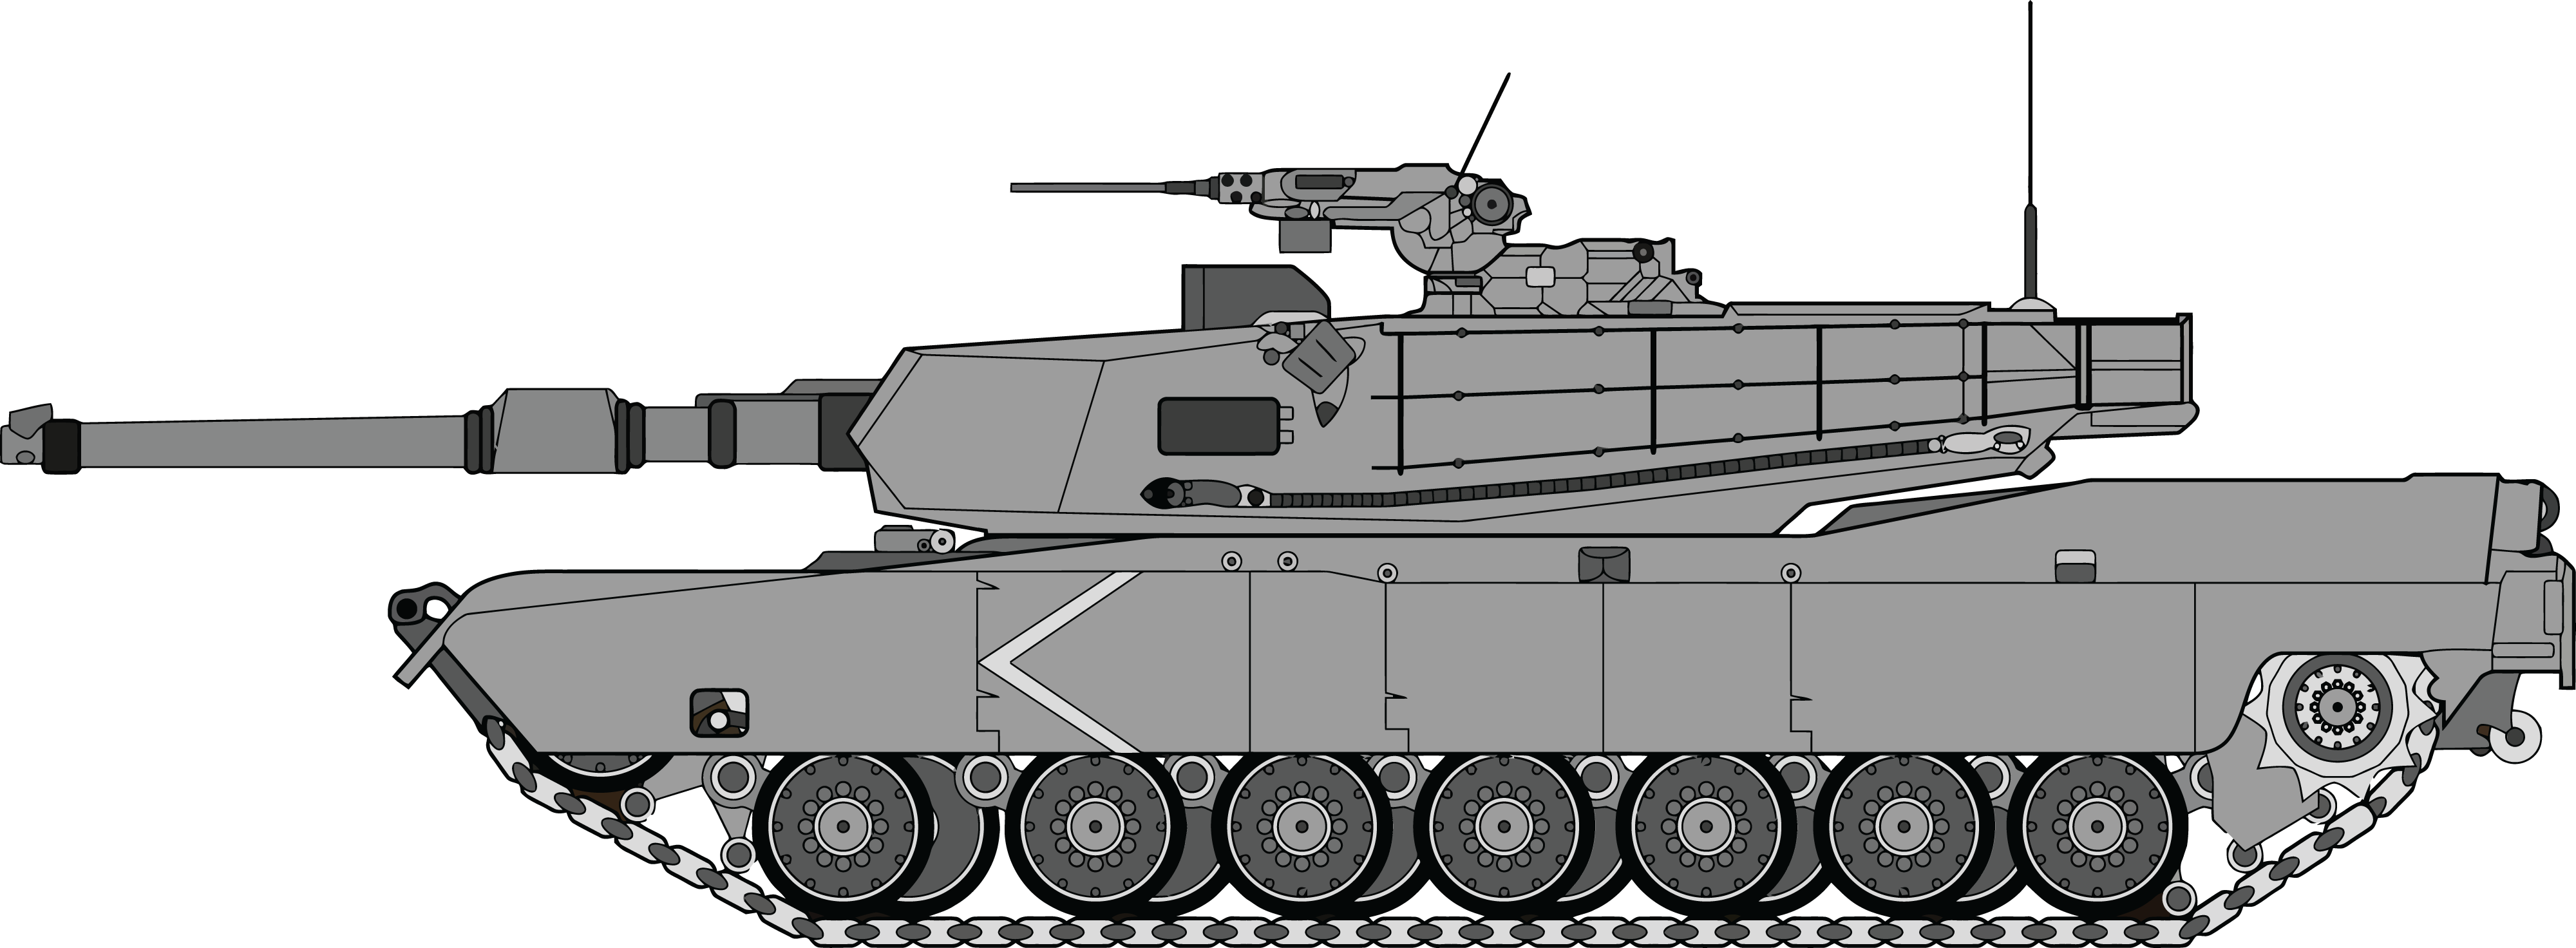 Free Clipart Of An army tank #00011048 .